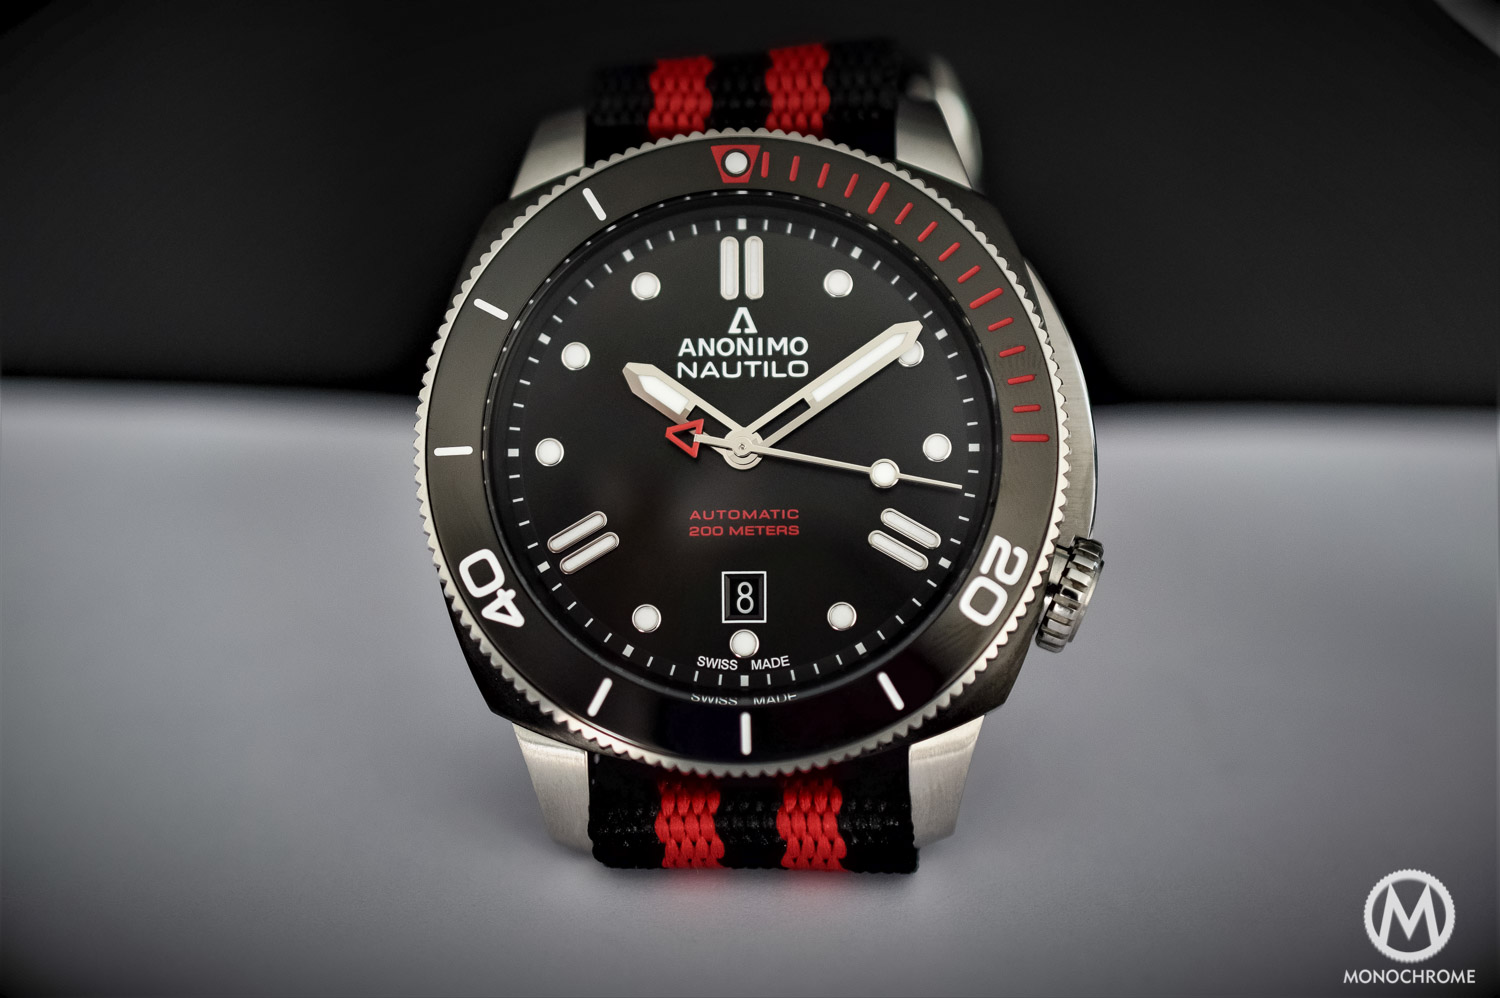 wrist sea form best look how sailing boats america s cup out and watches natural battle big a the images we automatic alliance brands fancy on luxury ivoedlund pinterest at as it